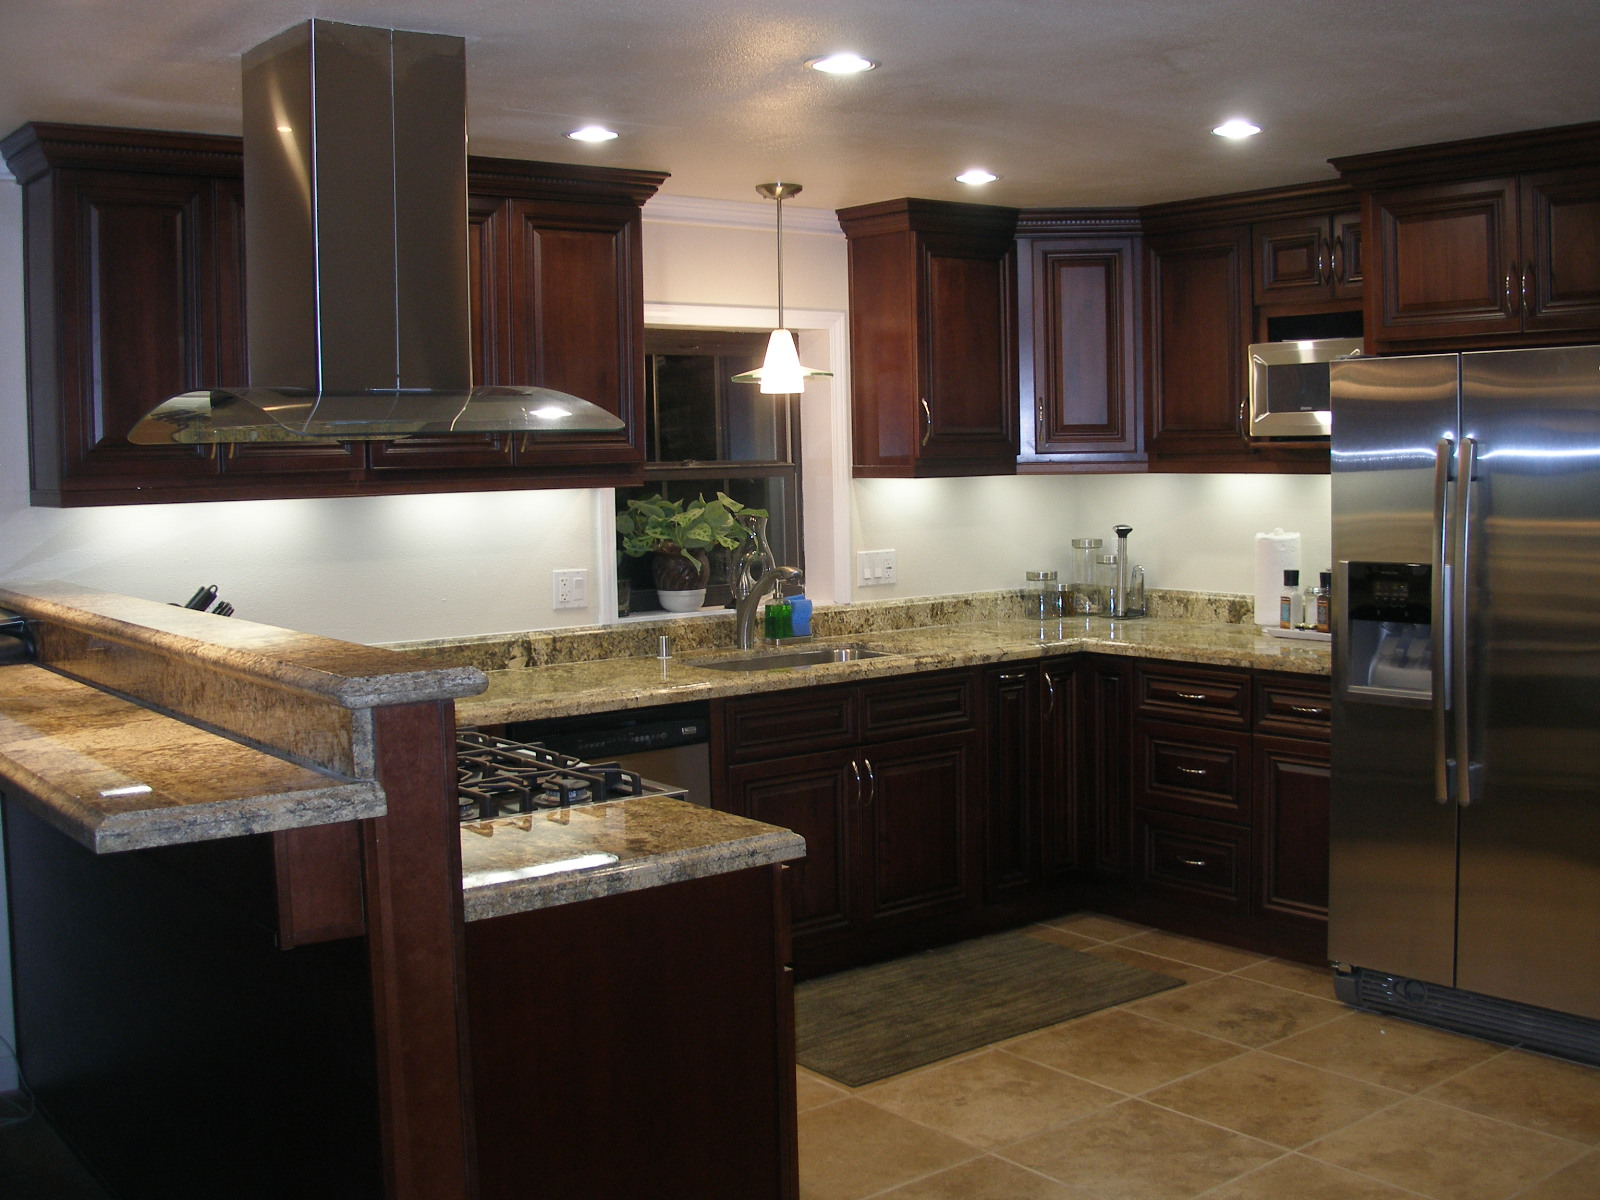 Kitchen remodeling brad t jones construction for Home kitchen remodeling